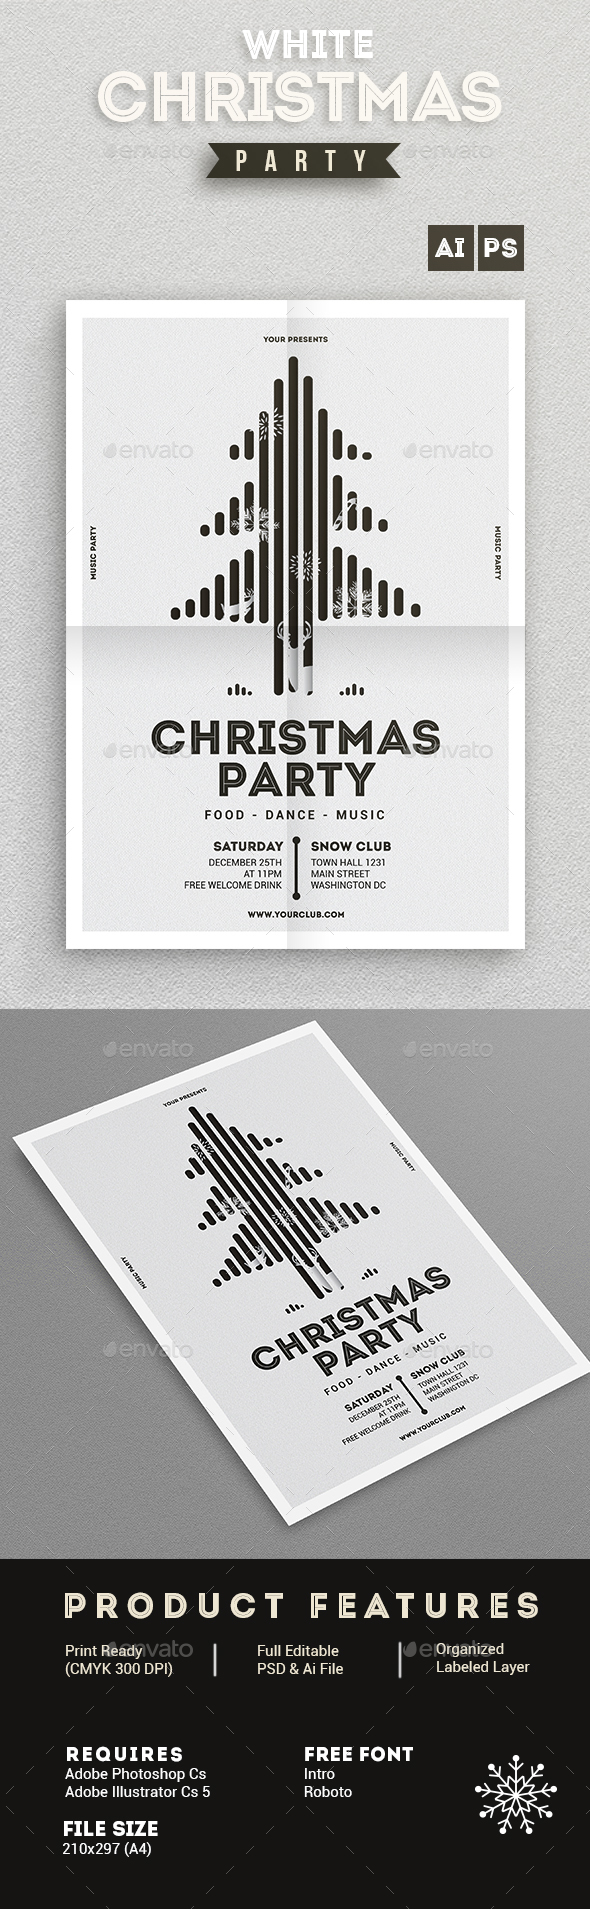 White Christmas Party Vol.01 - Events Flyers